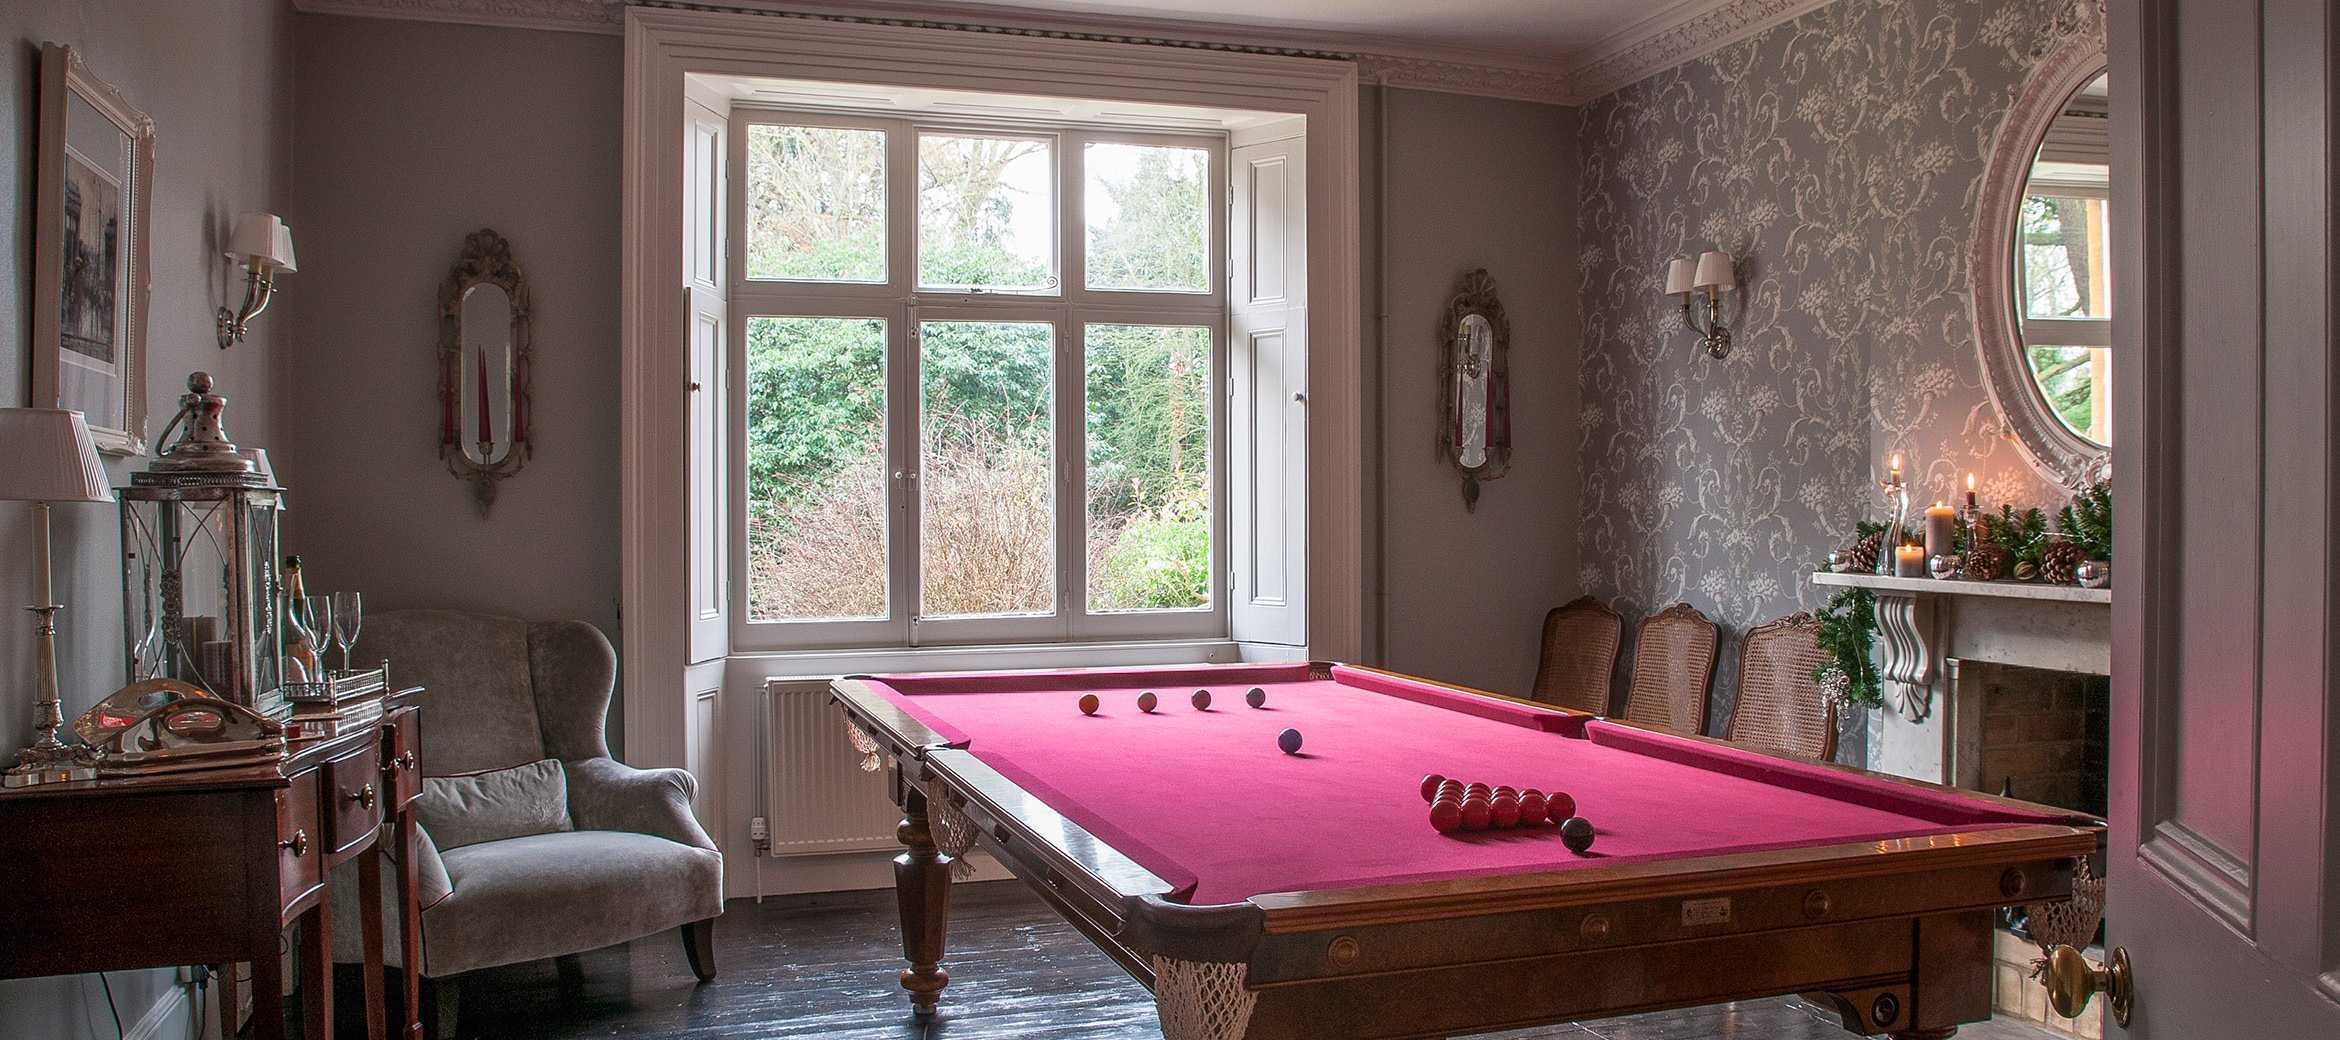 old-rectory-broadway-billiards